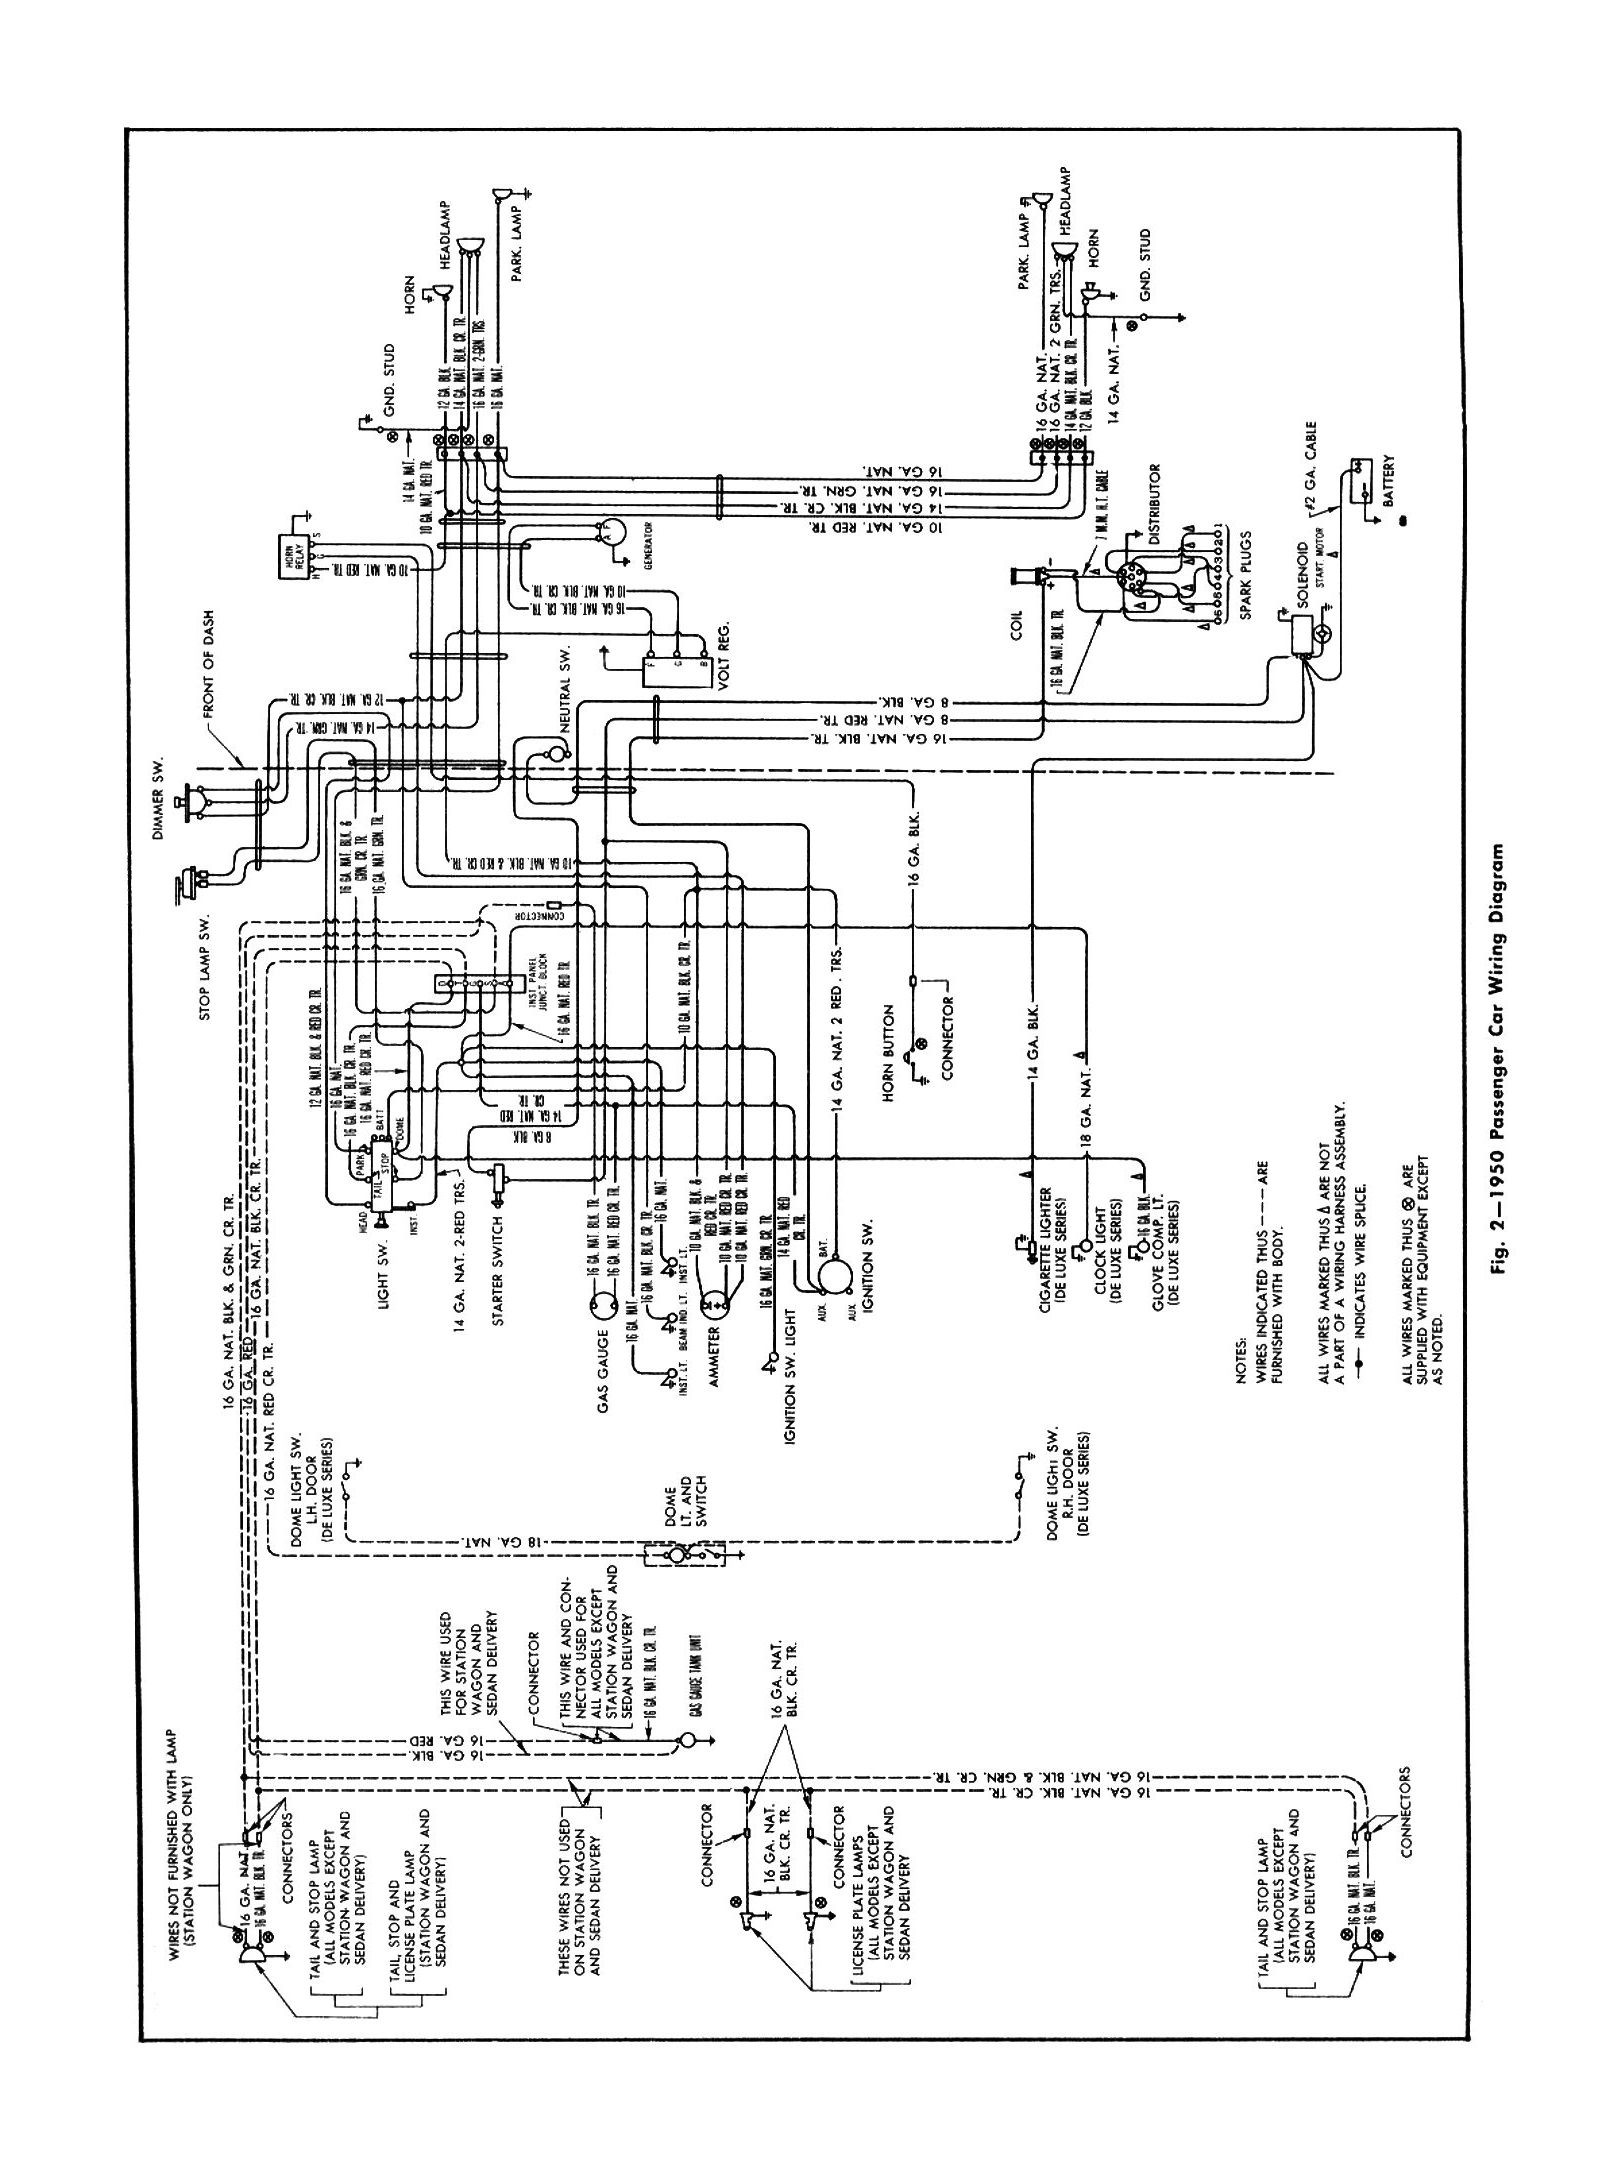 wiring diagram 1955 buick with 1952 Chevy Truck Turn Signal Wiring Diagram on Showthread additionally 1993 Ford Thunderbird Wiring Diagram together with 57 Chevy Starter Wiring Diagram furthermore 1998 Chevy Truck Front Suspension Diagram likewise 1948 Dodge Biz Coupe Wiring Diagrams.